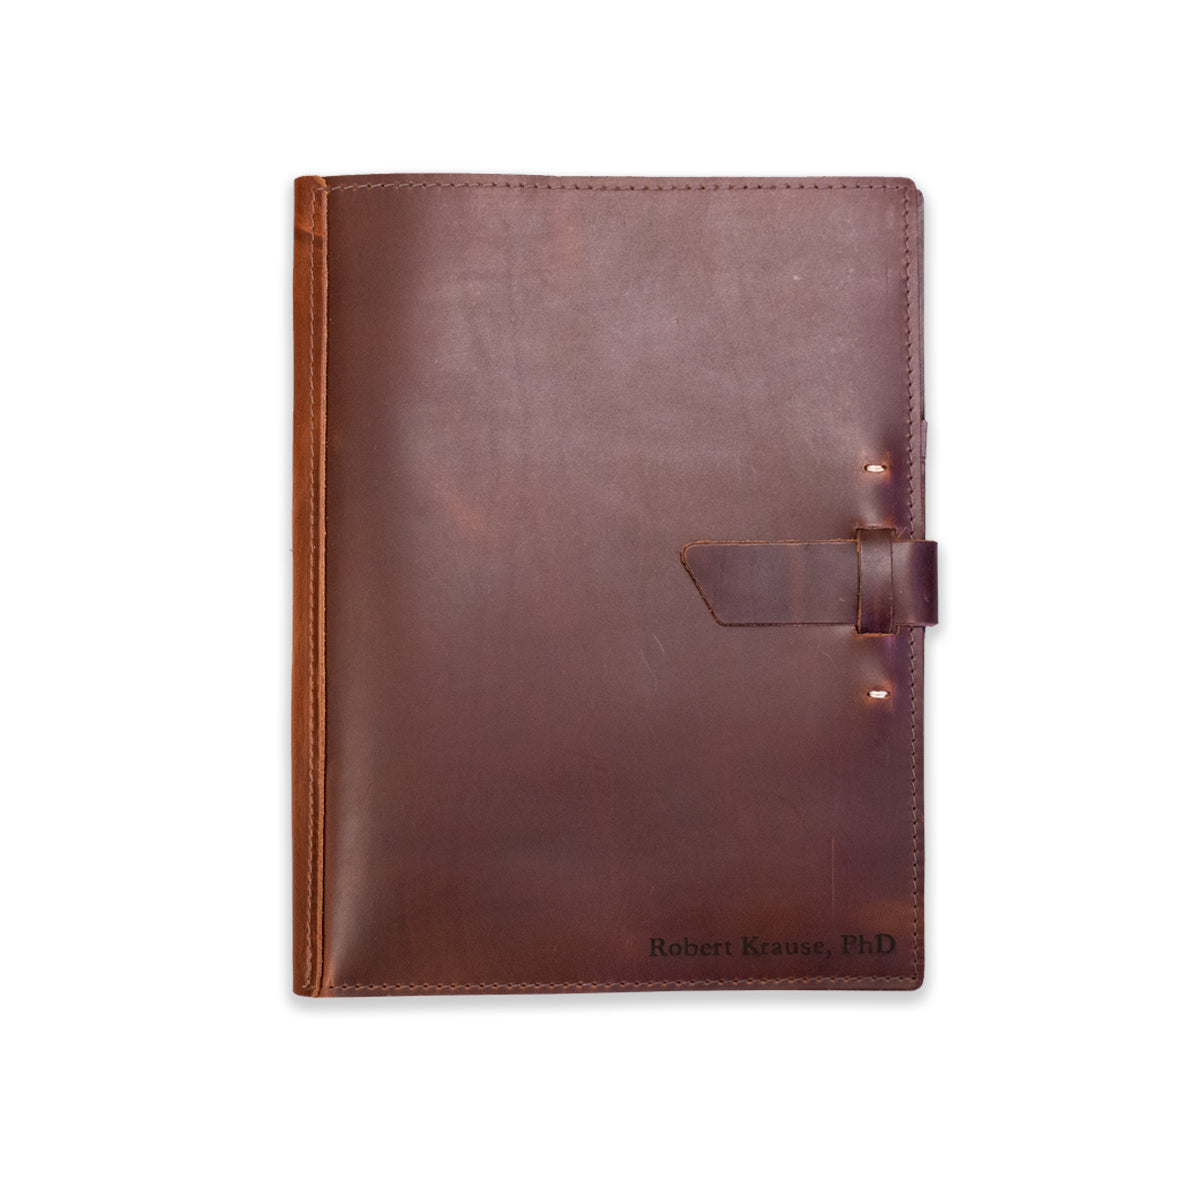 Guide to Personalizing Leather Gifts